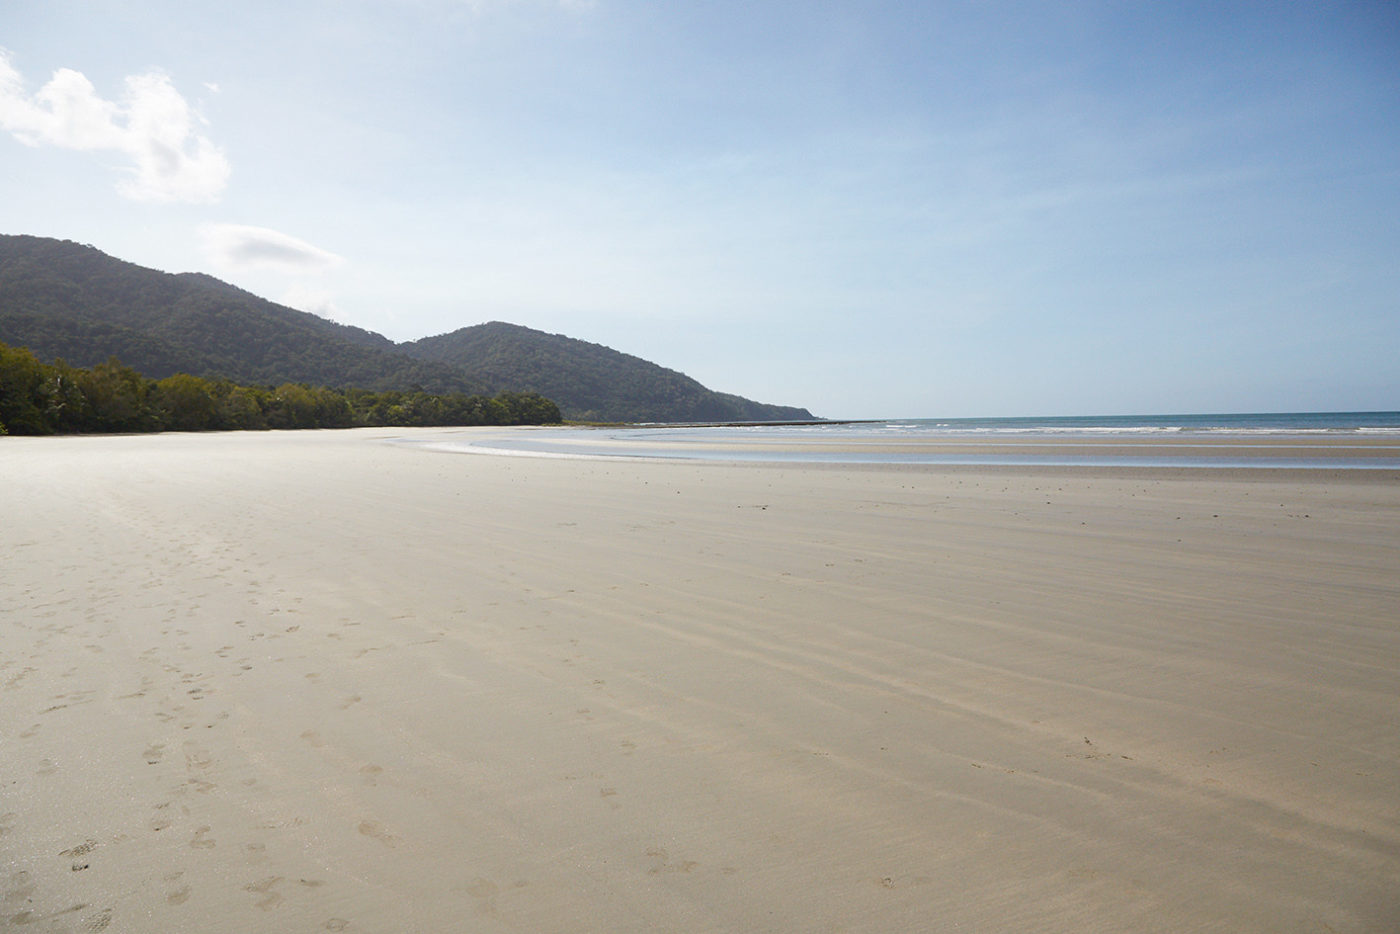 daintree, regenwald, rainforest, reiseblog, roadtrip, australien, milesandshores, forestwalk, cape tribulation, beach, strand